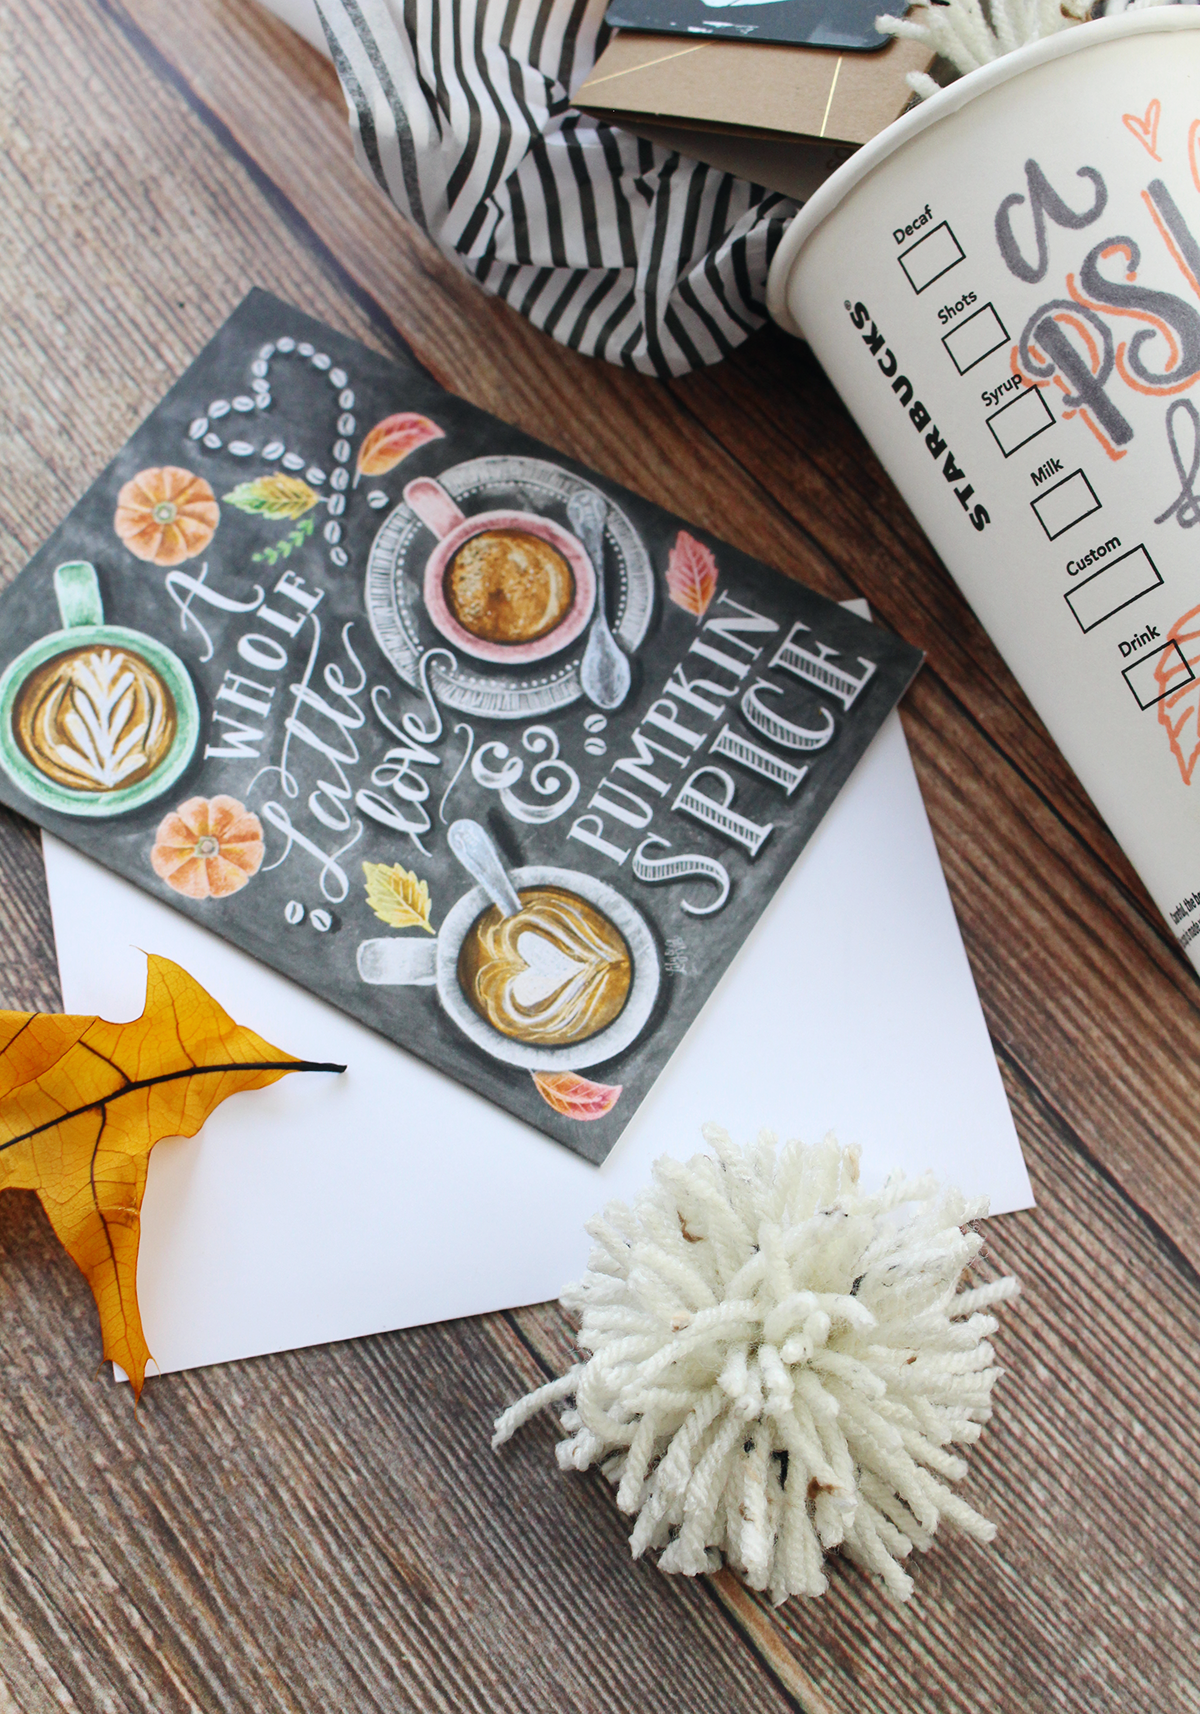 Pair an L&V Pumpkin Spice Latte card with a Starbucks gift card for a sweet fall gift for a pumpkin spice loving friend.